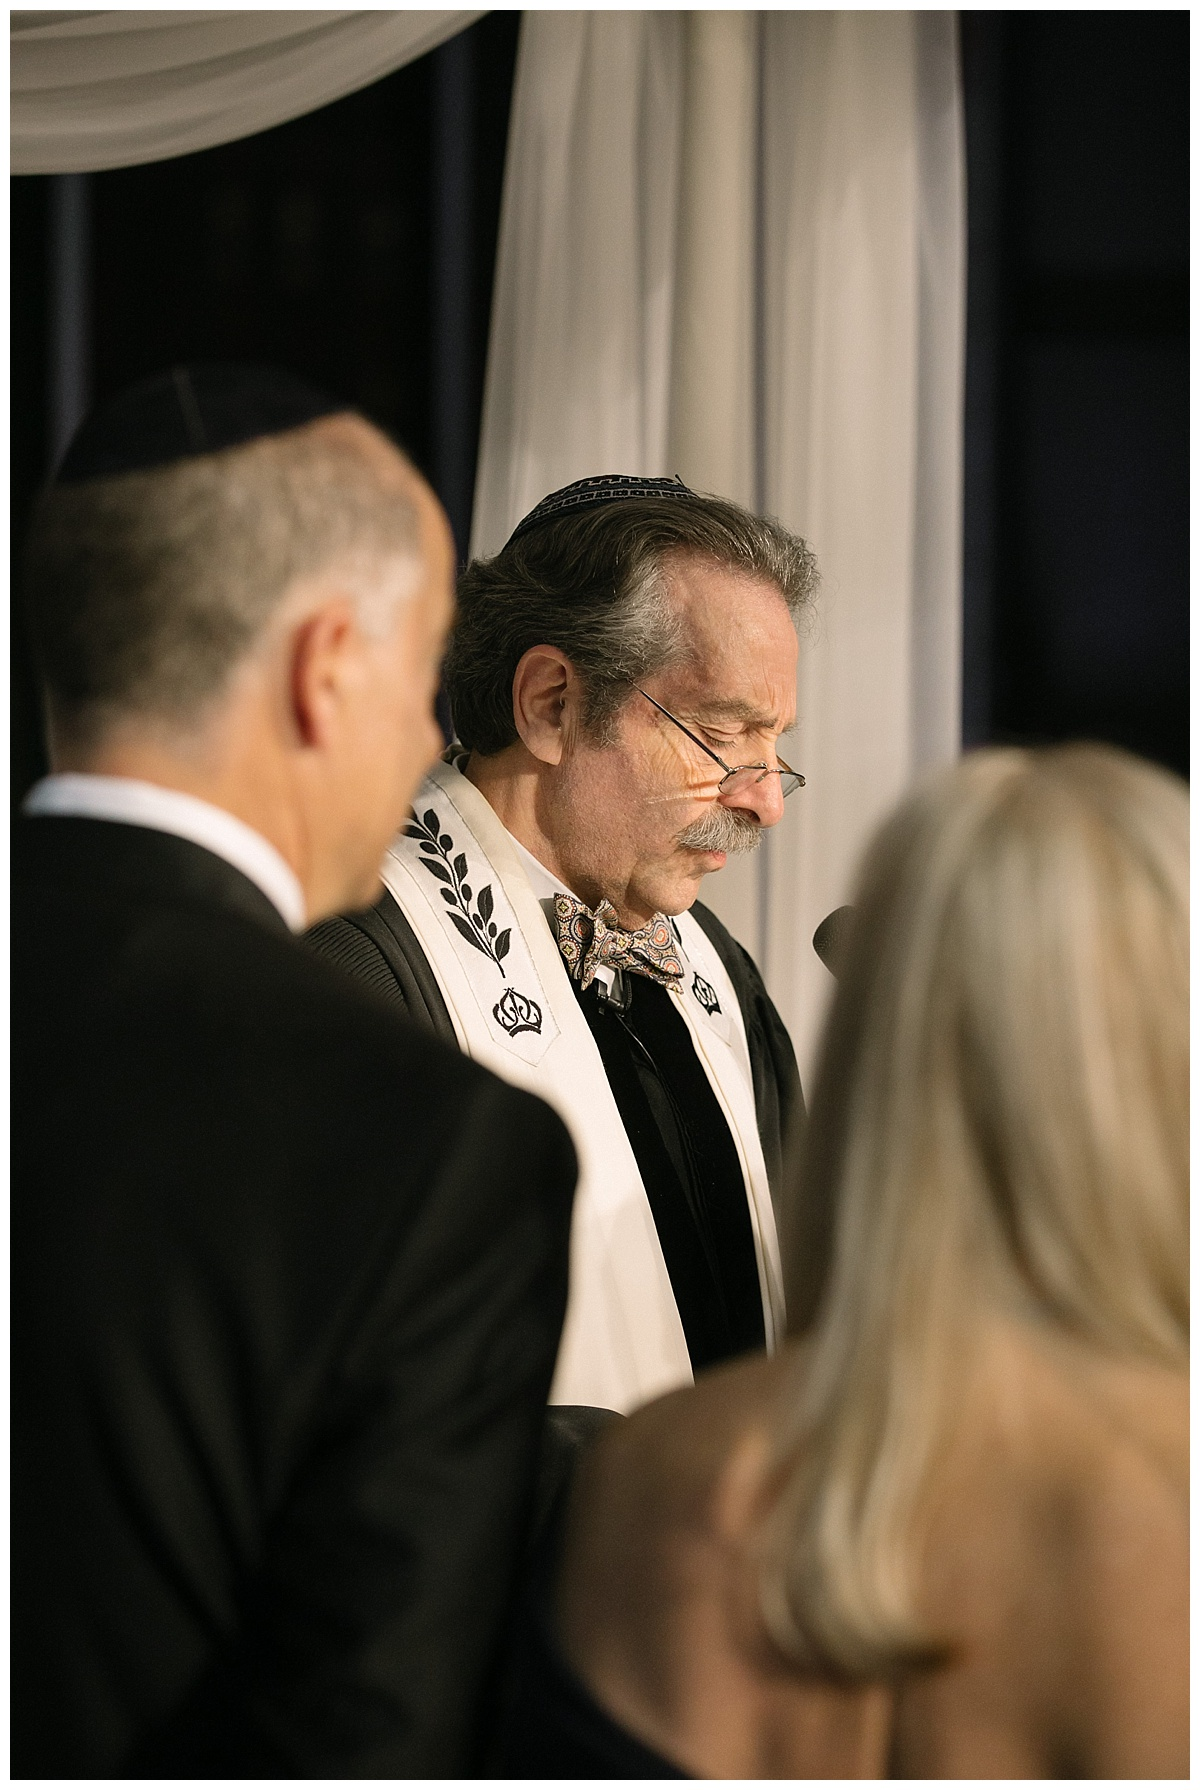 An officiant proceeding a jewish wedding ceremony at Guastavinos in New York City.